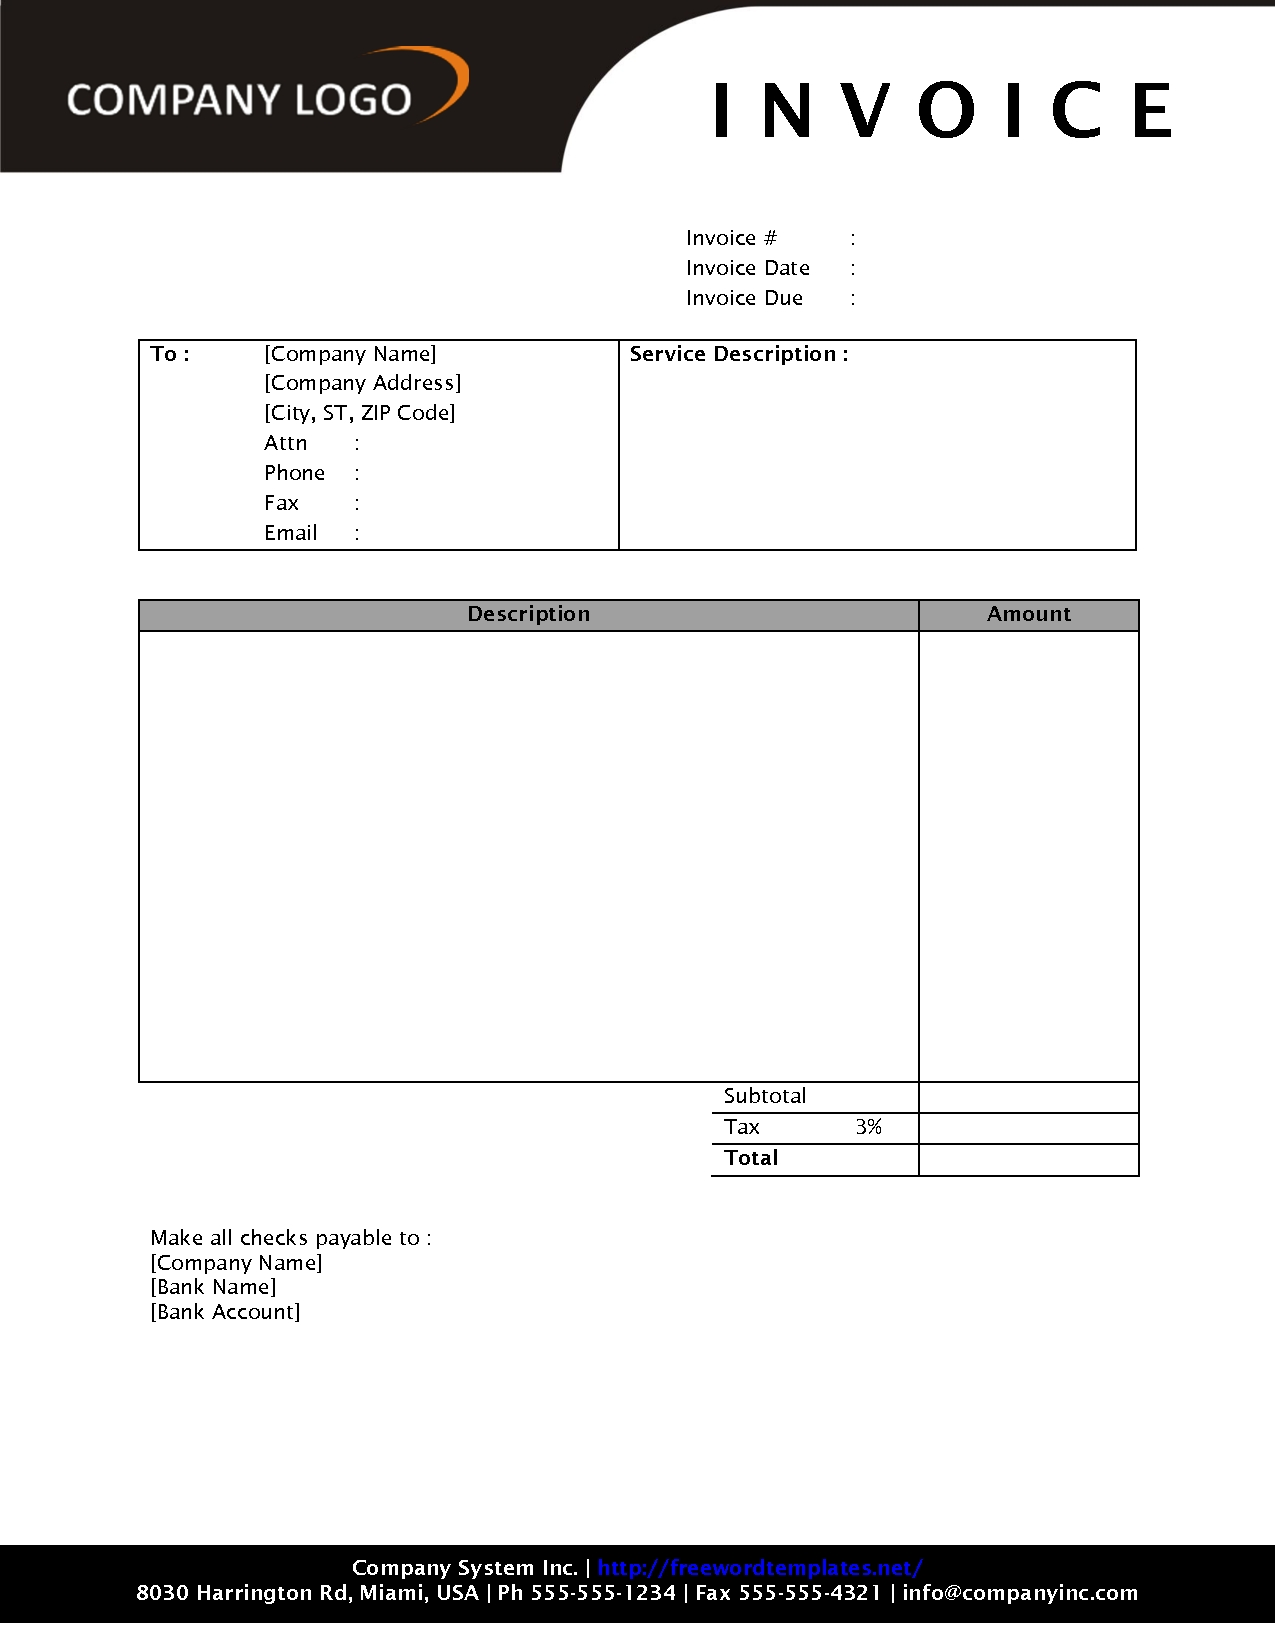 free templates downloads invoice template invoices ready made free invoices download